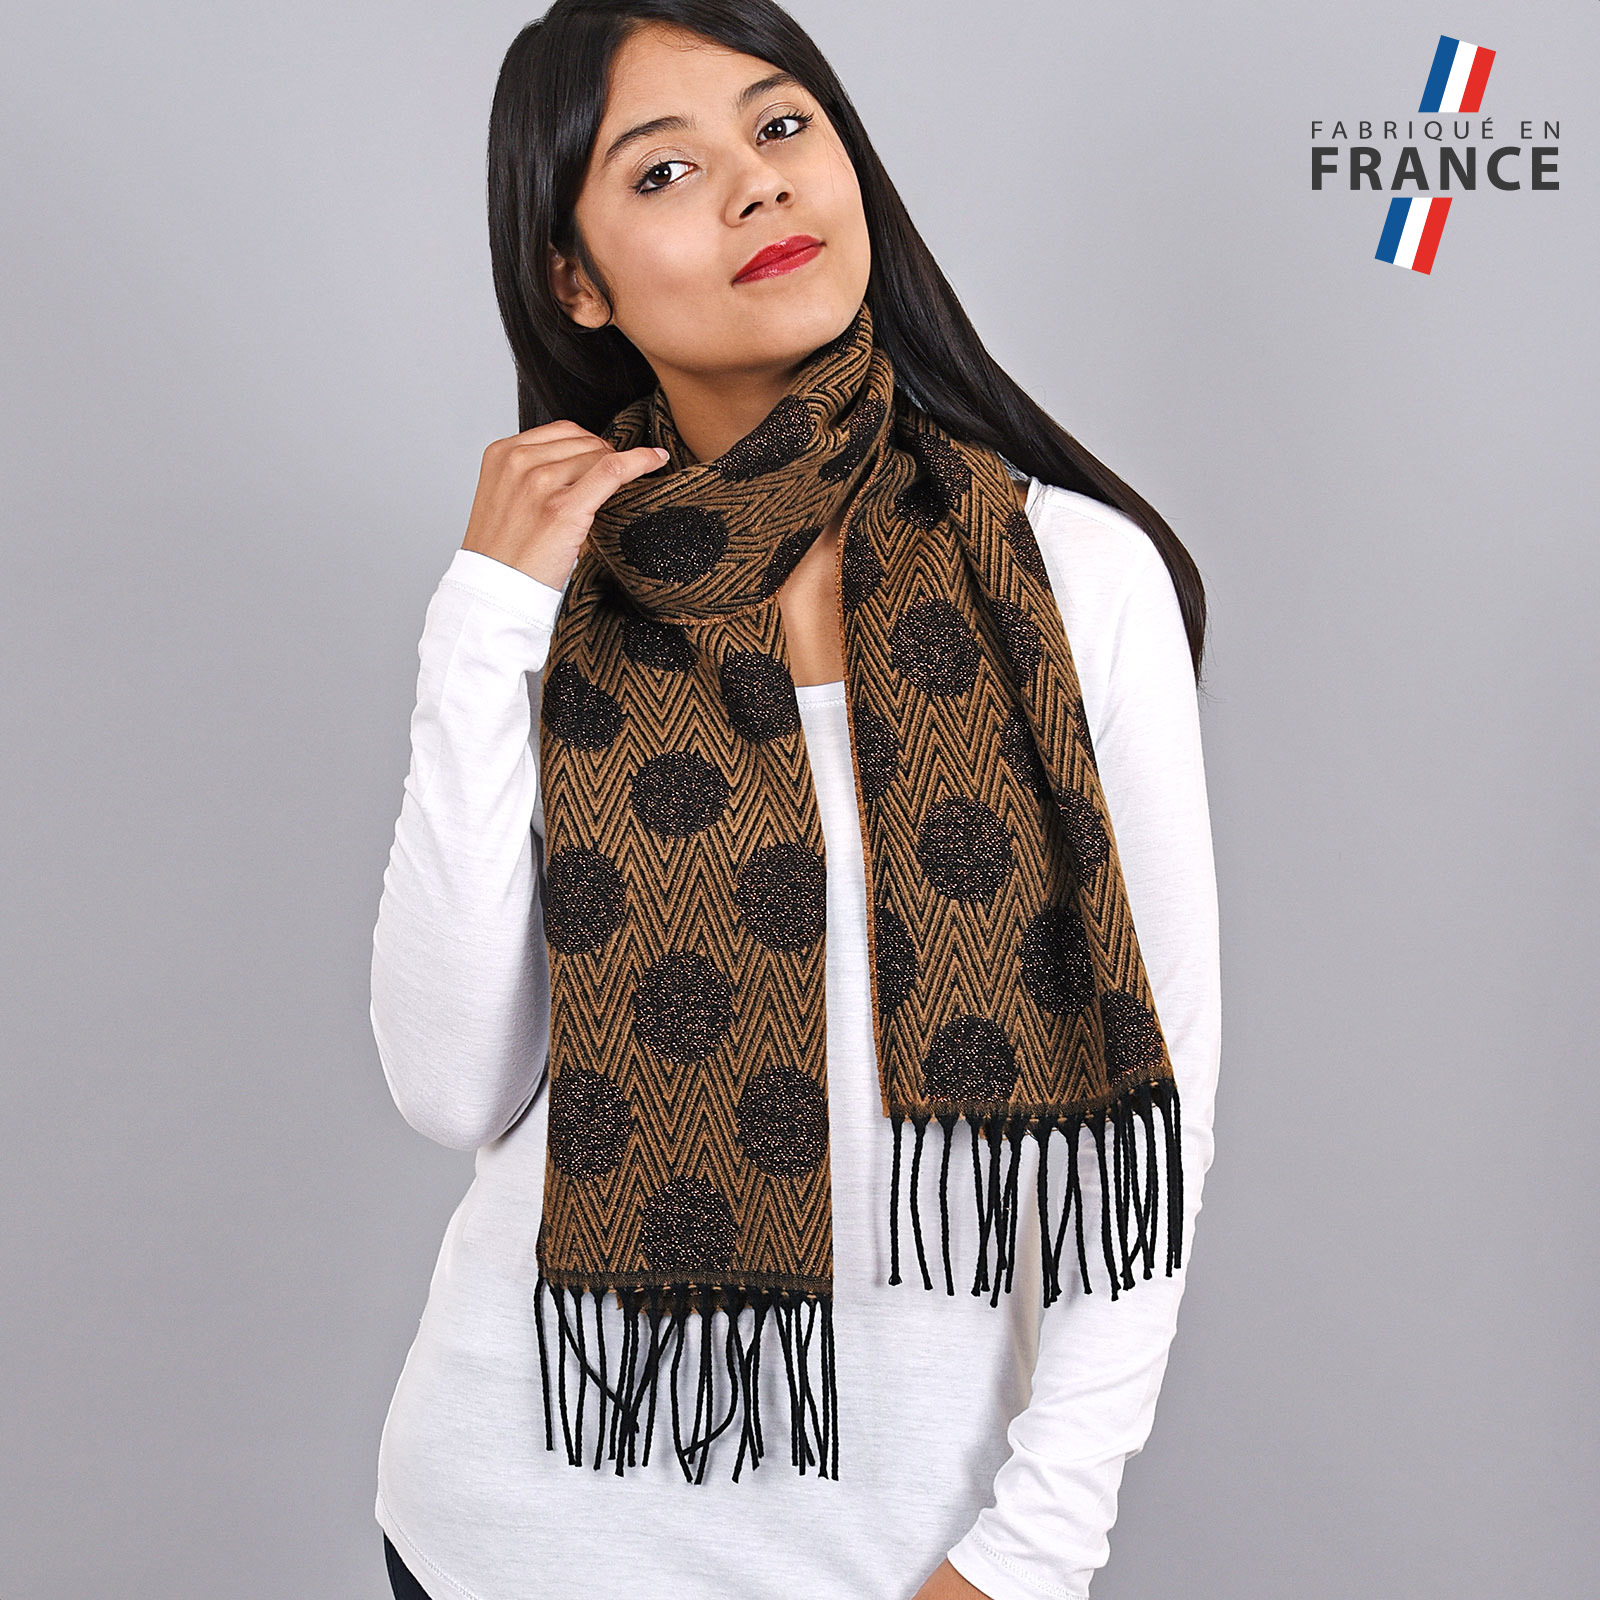 AT-03946-VF16-FR-echarpe-pois-marron-paillettes